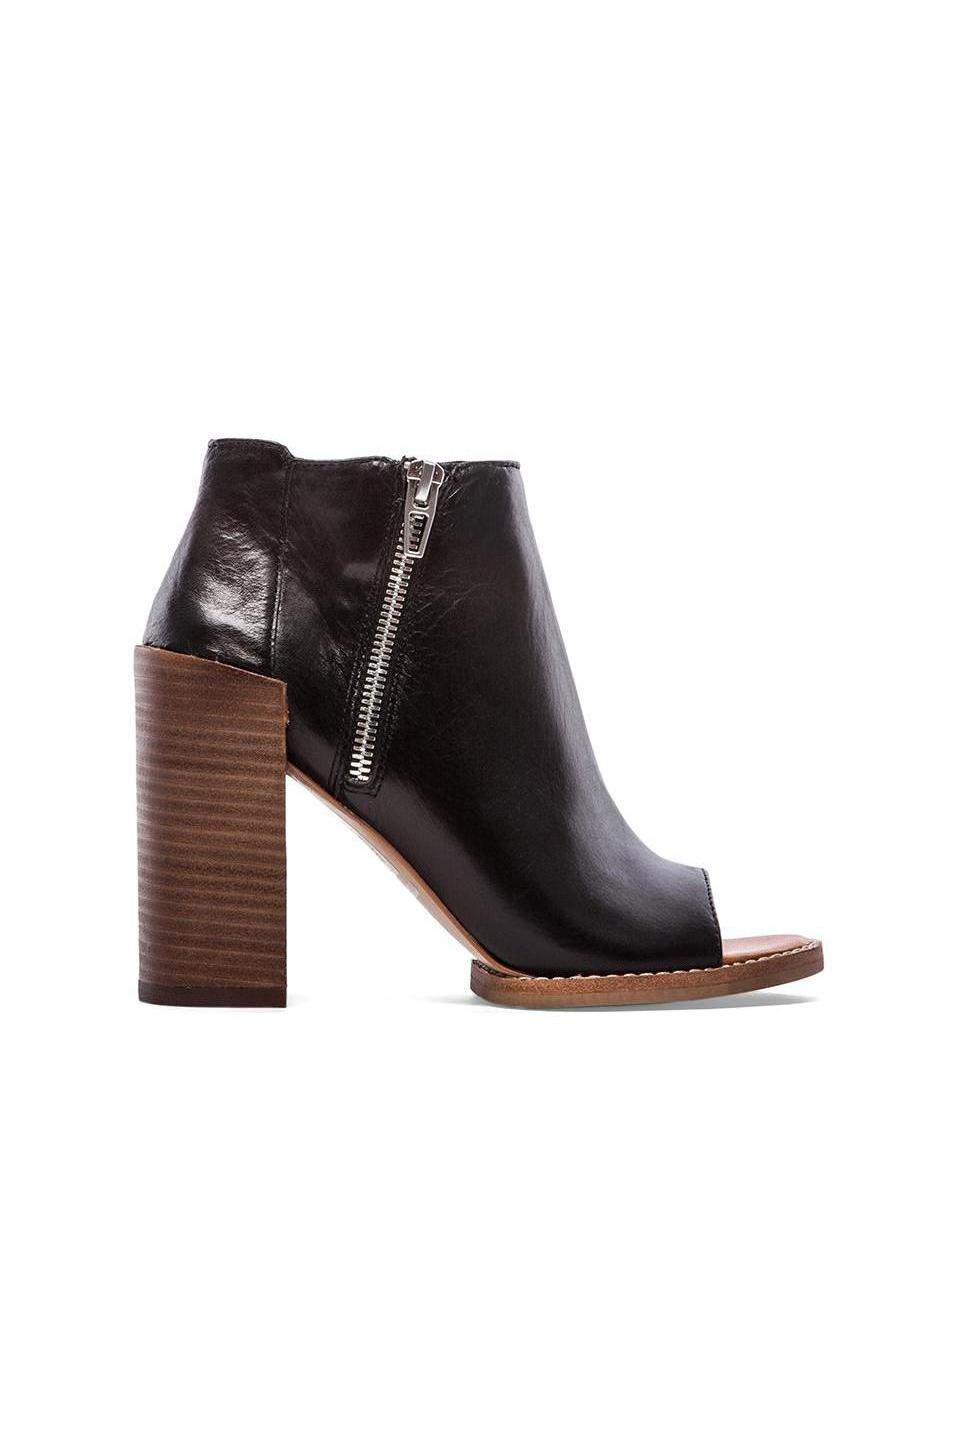 Dolce Vita Mercy Bootie in Black